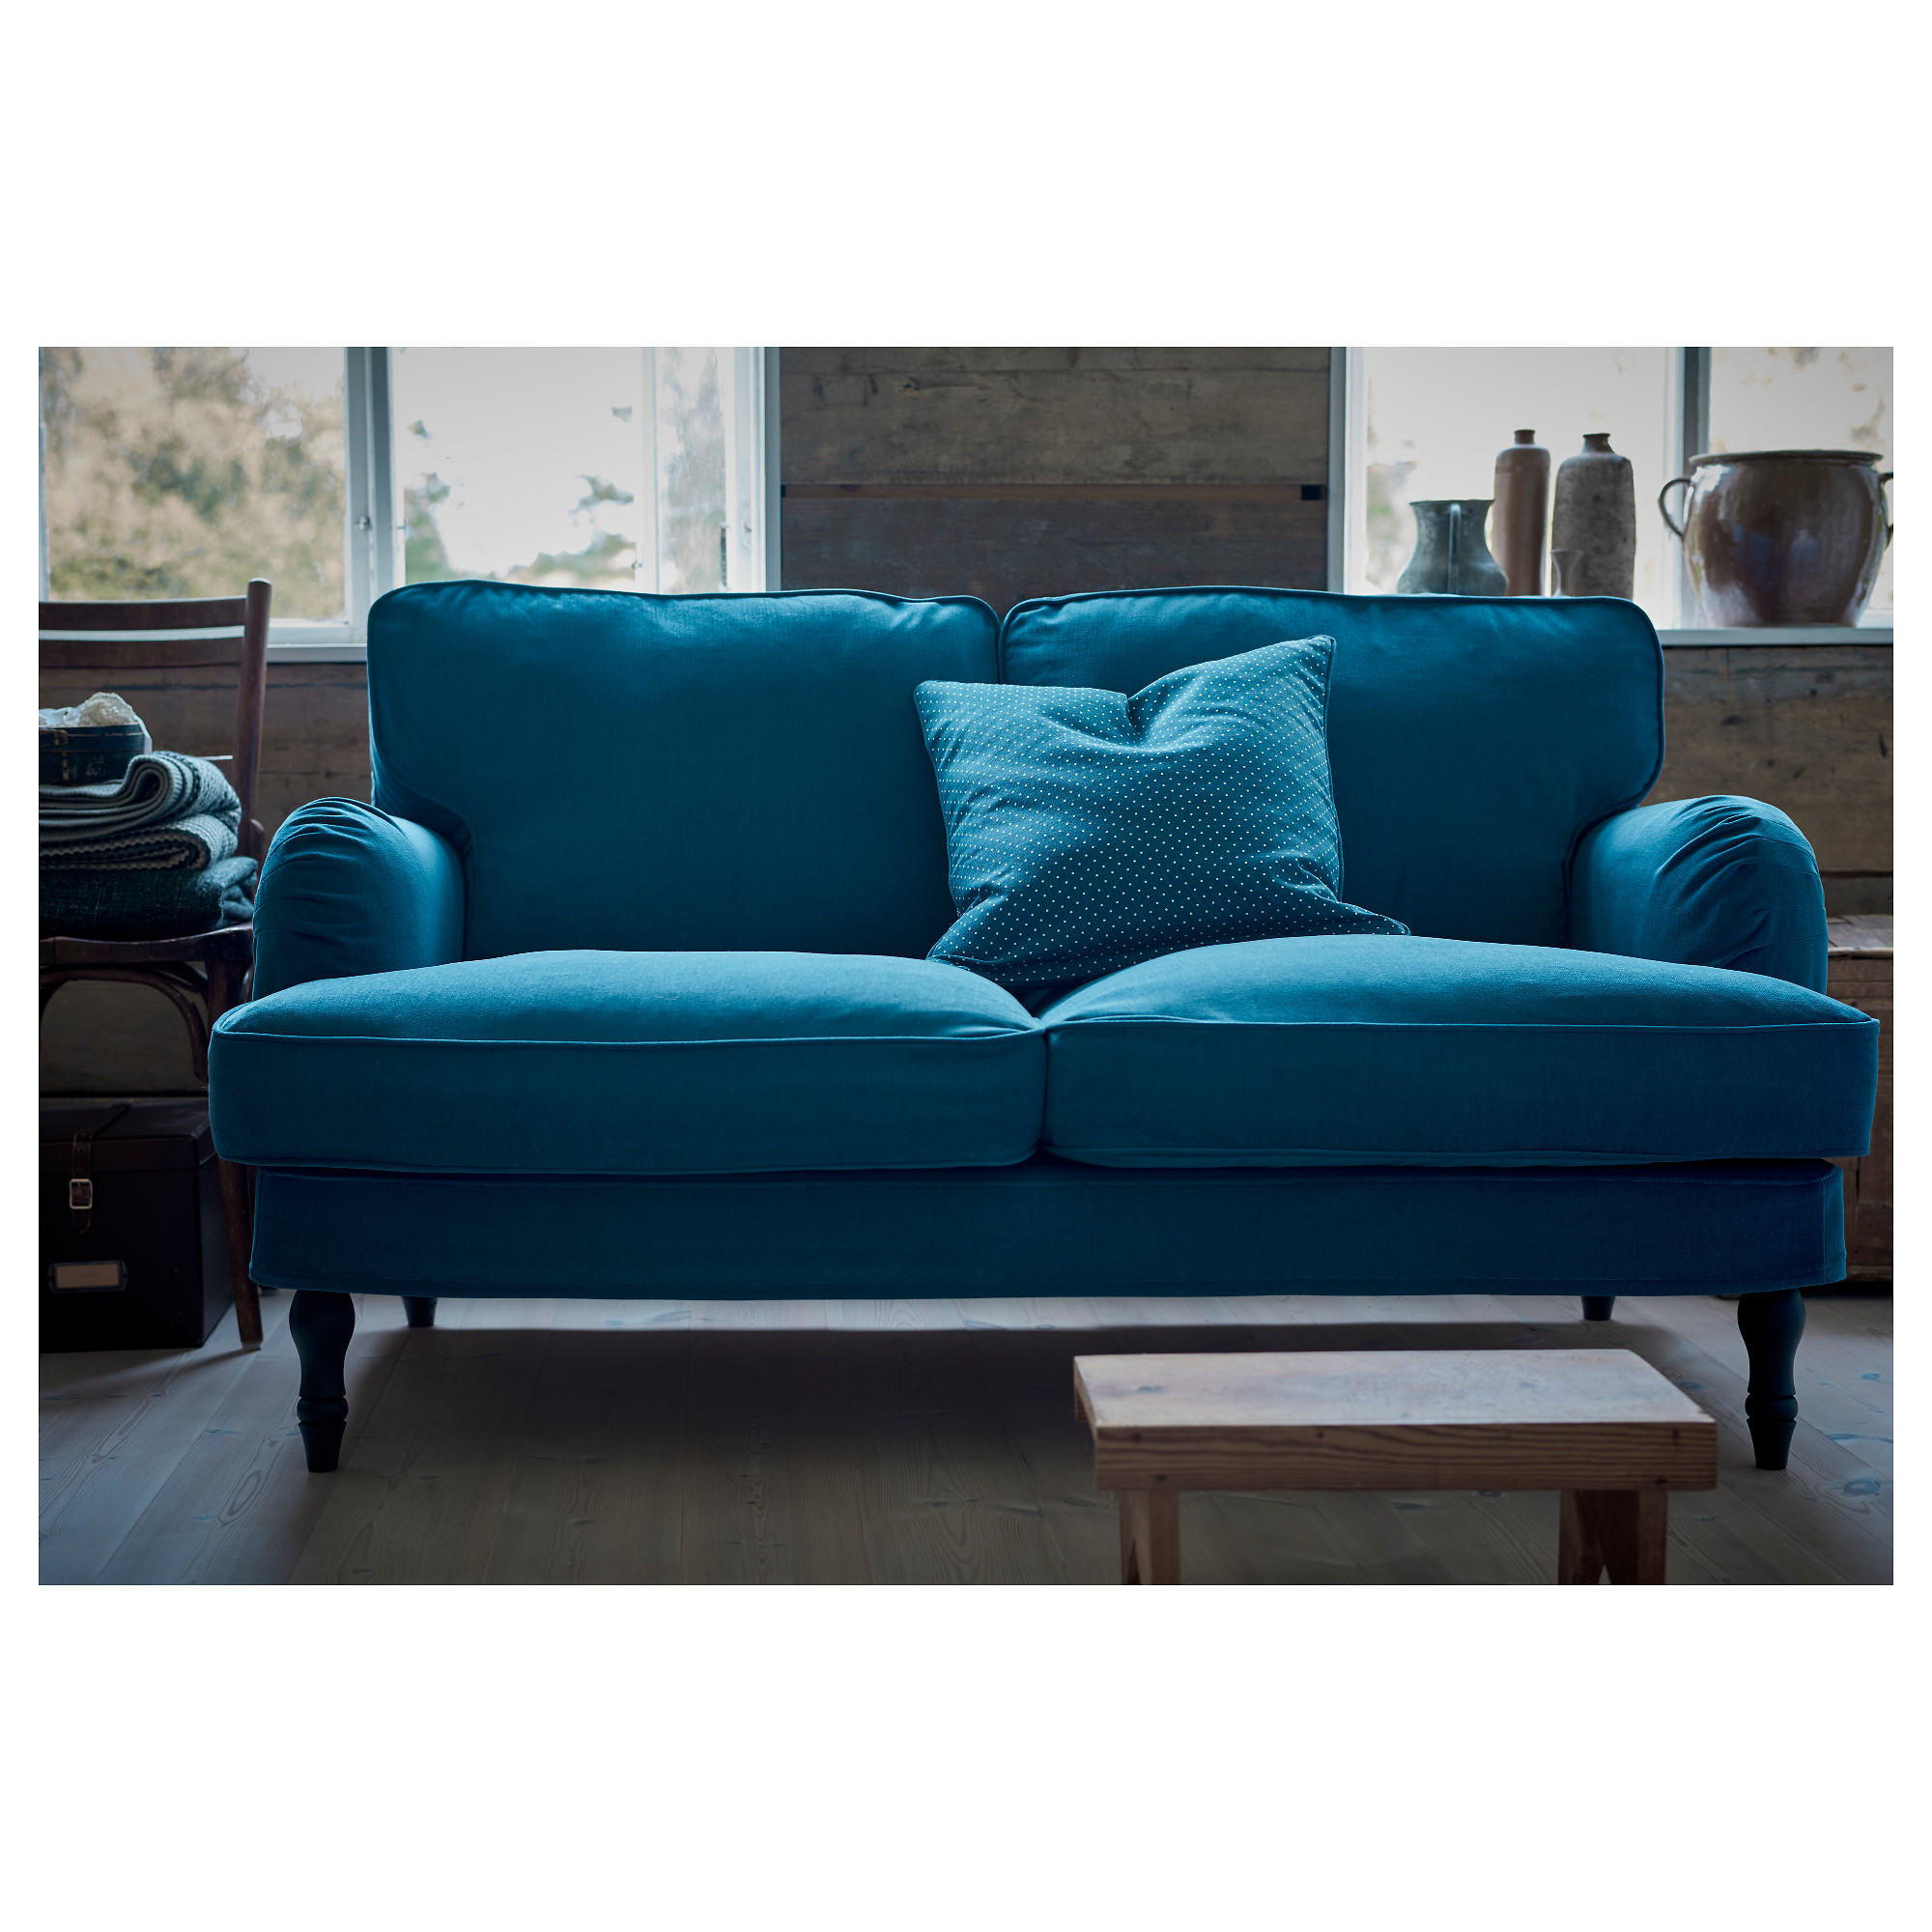 sofa blau elegant full size of sofa blaues marine sofa eisblaues sofa kleines graues sofa. Black Bedroom Furniture Sets. Home Design Ideas